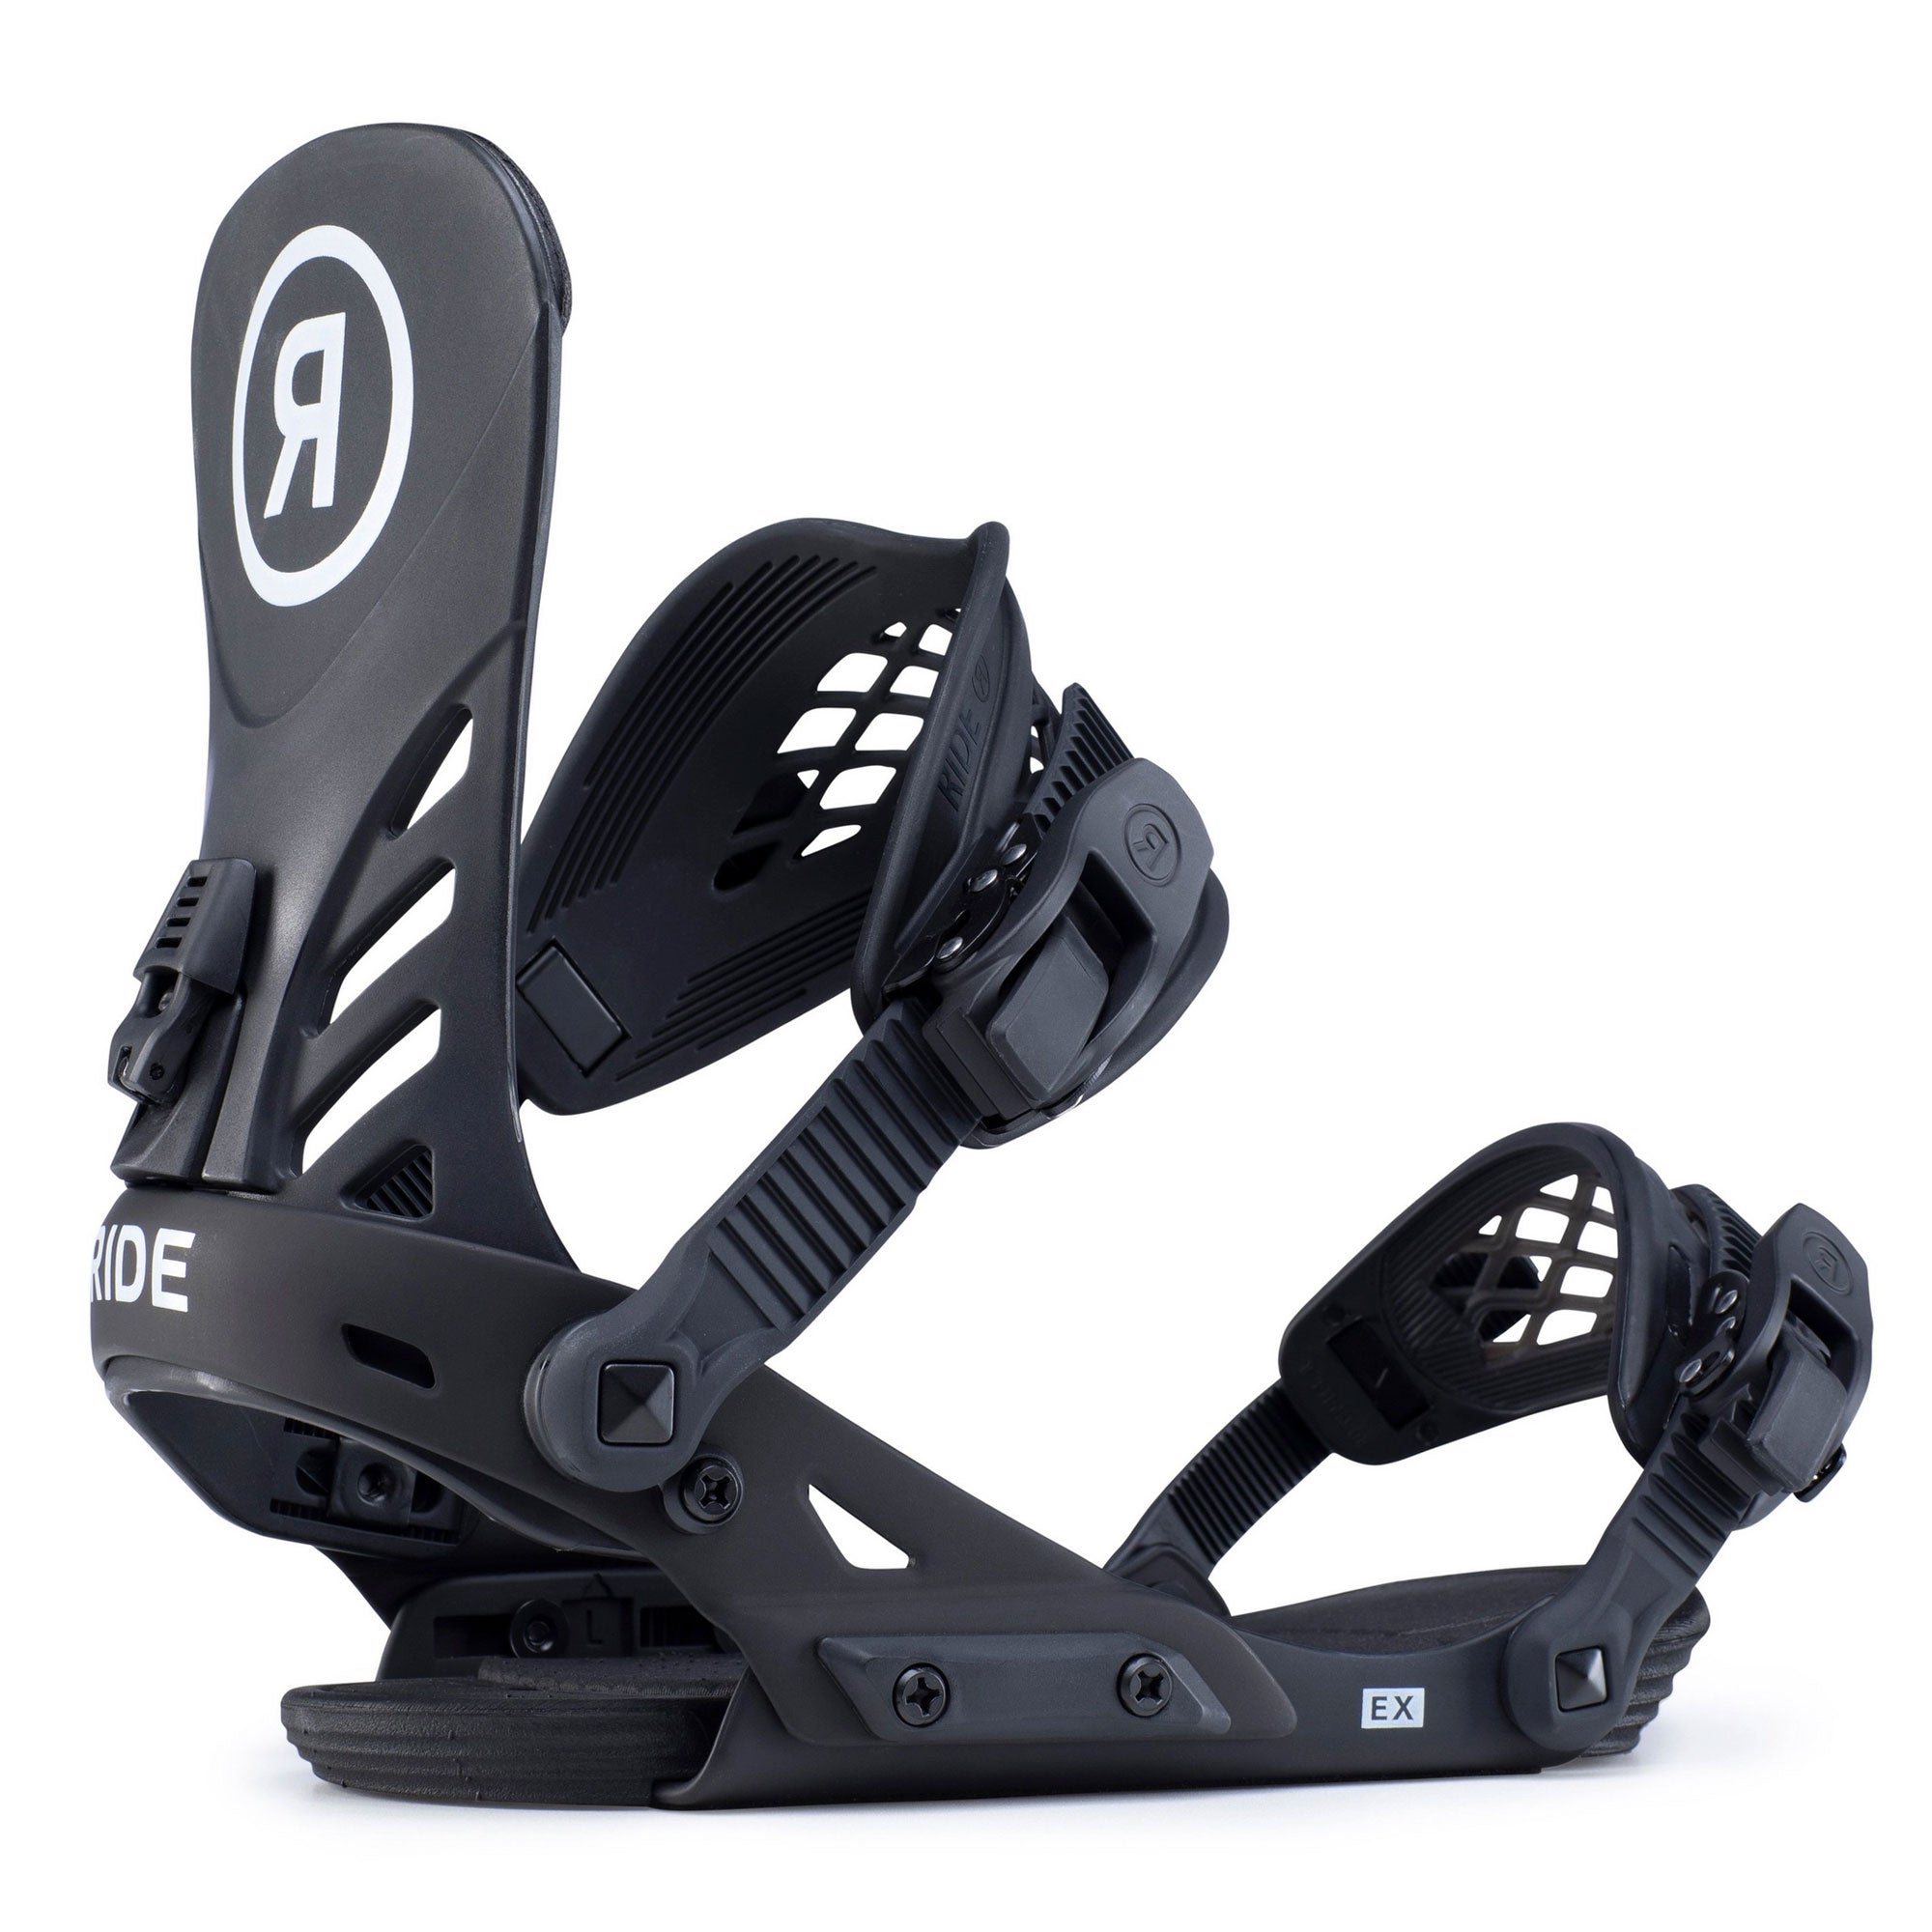 RIDE EX 2020 BINDINGS BLACK